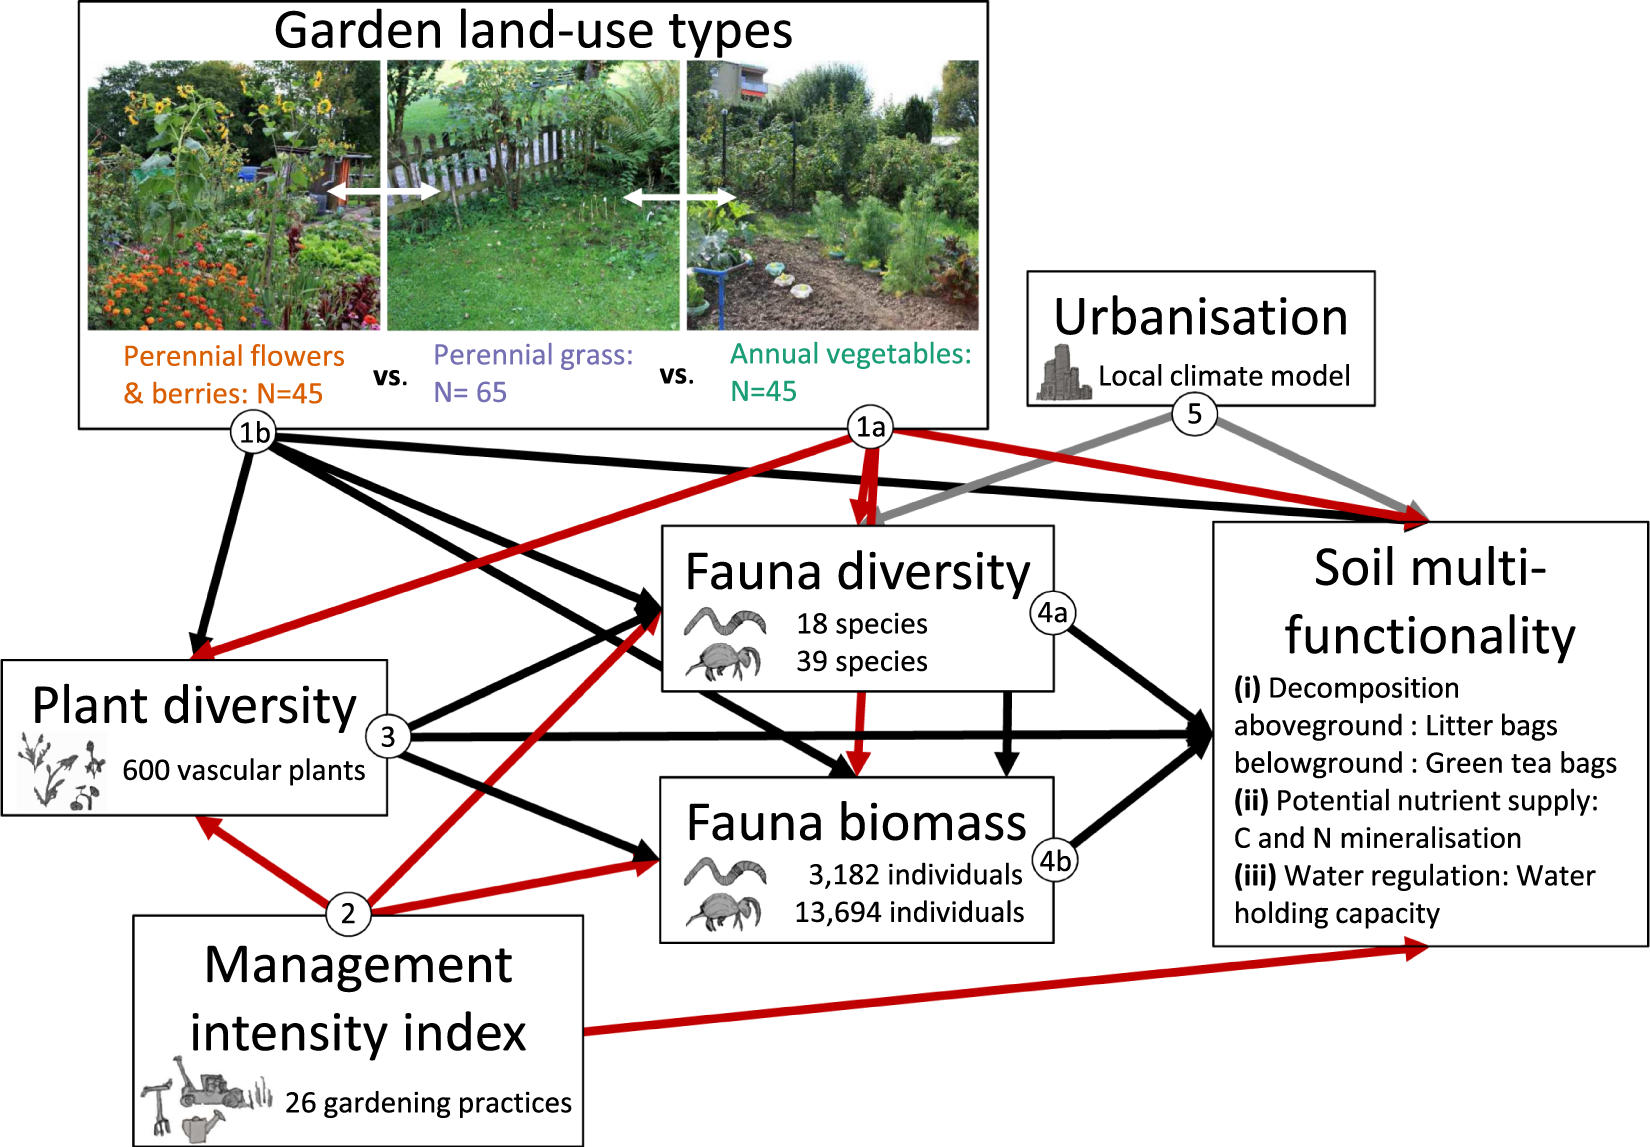 Direct and indirect effects of urban gardening on aboveground and